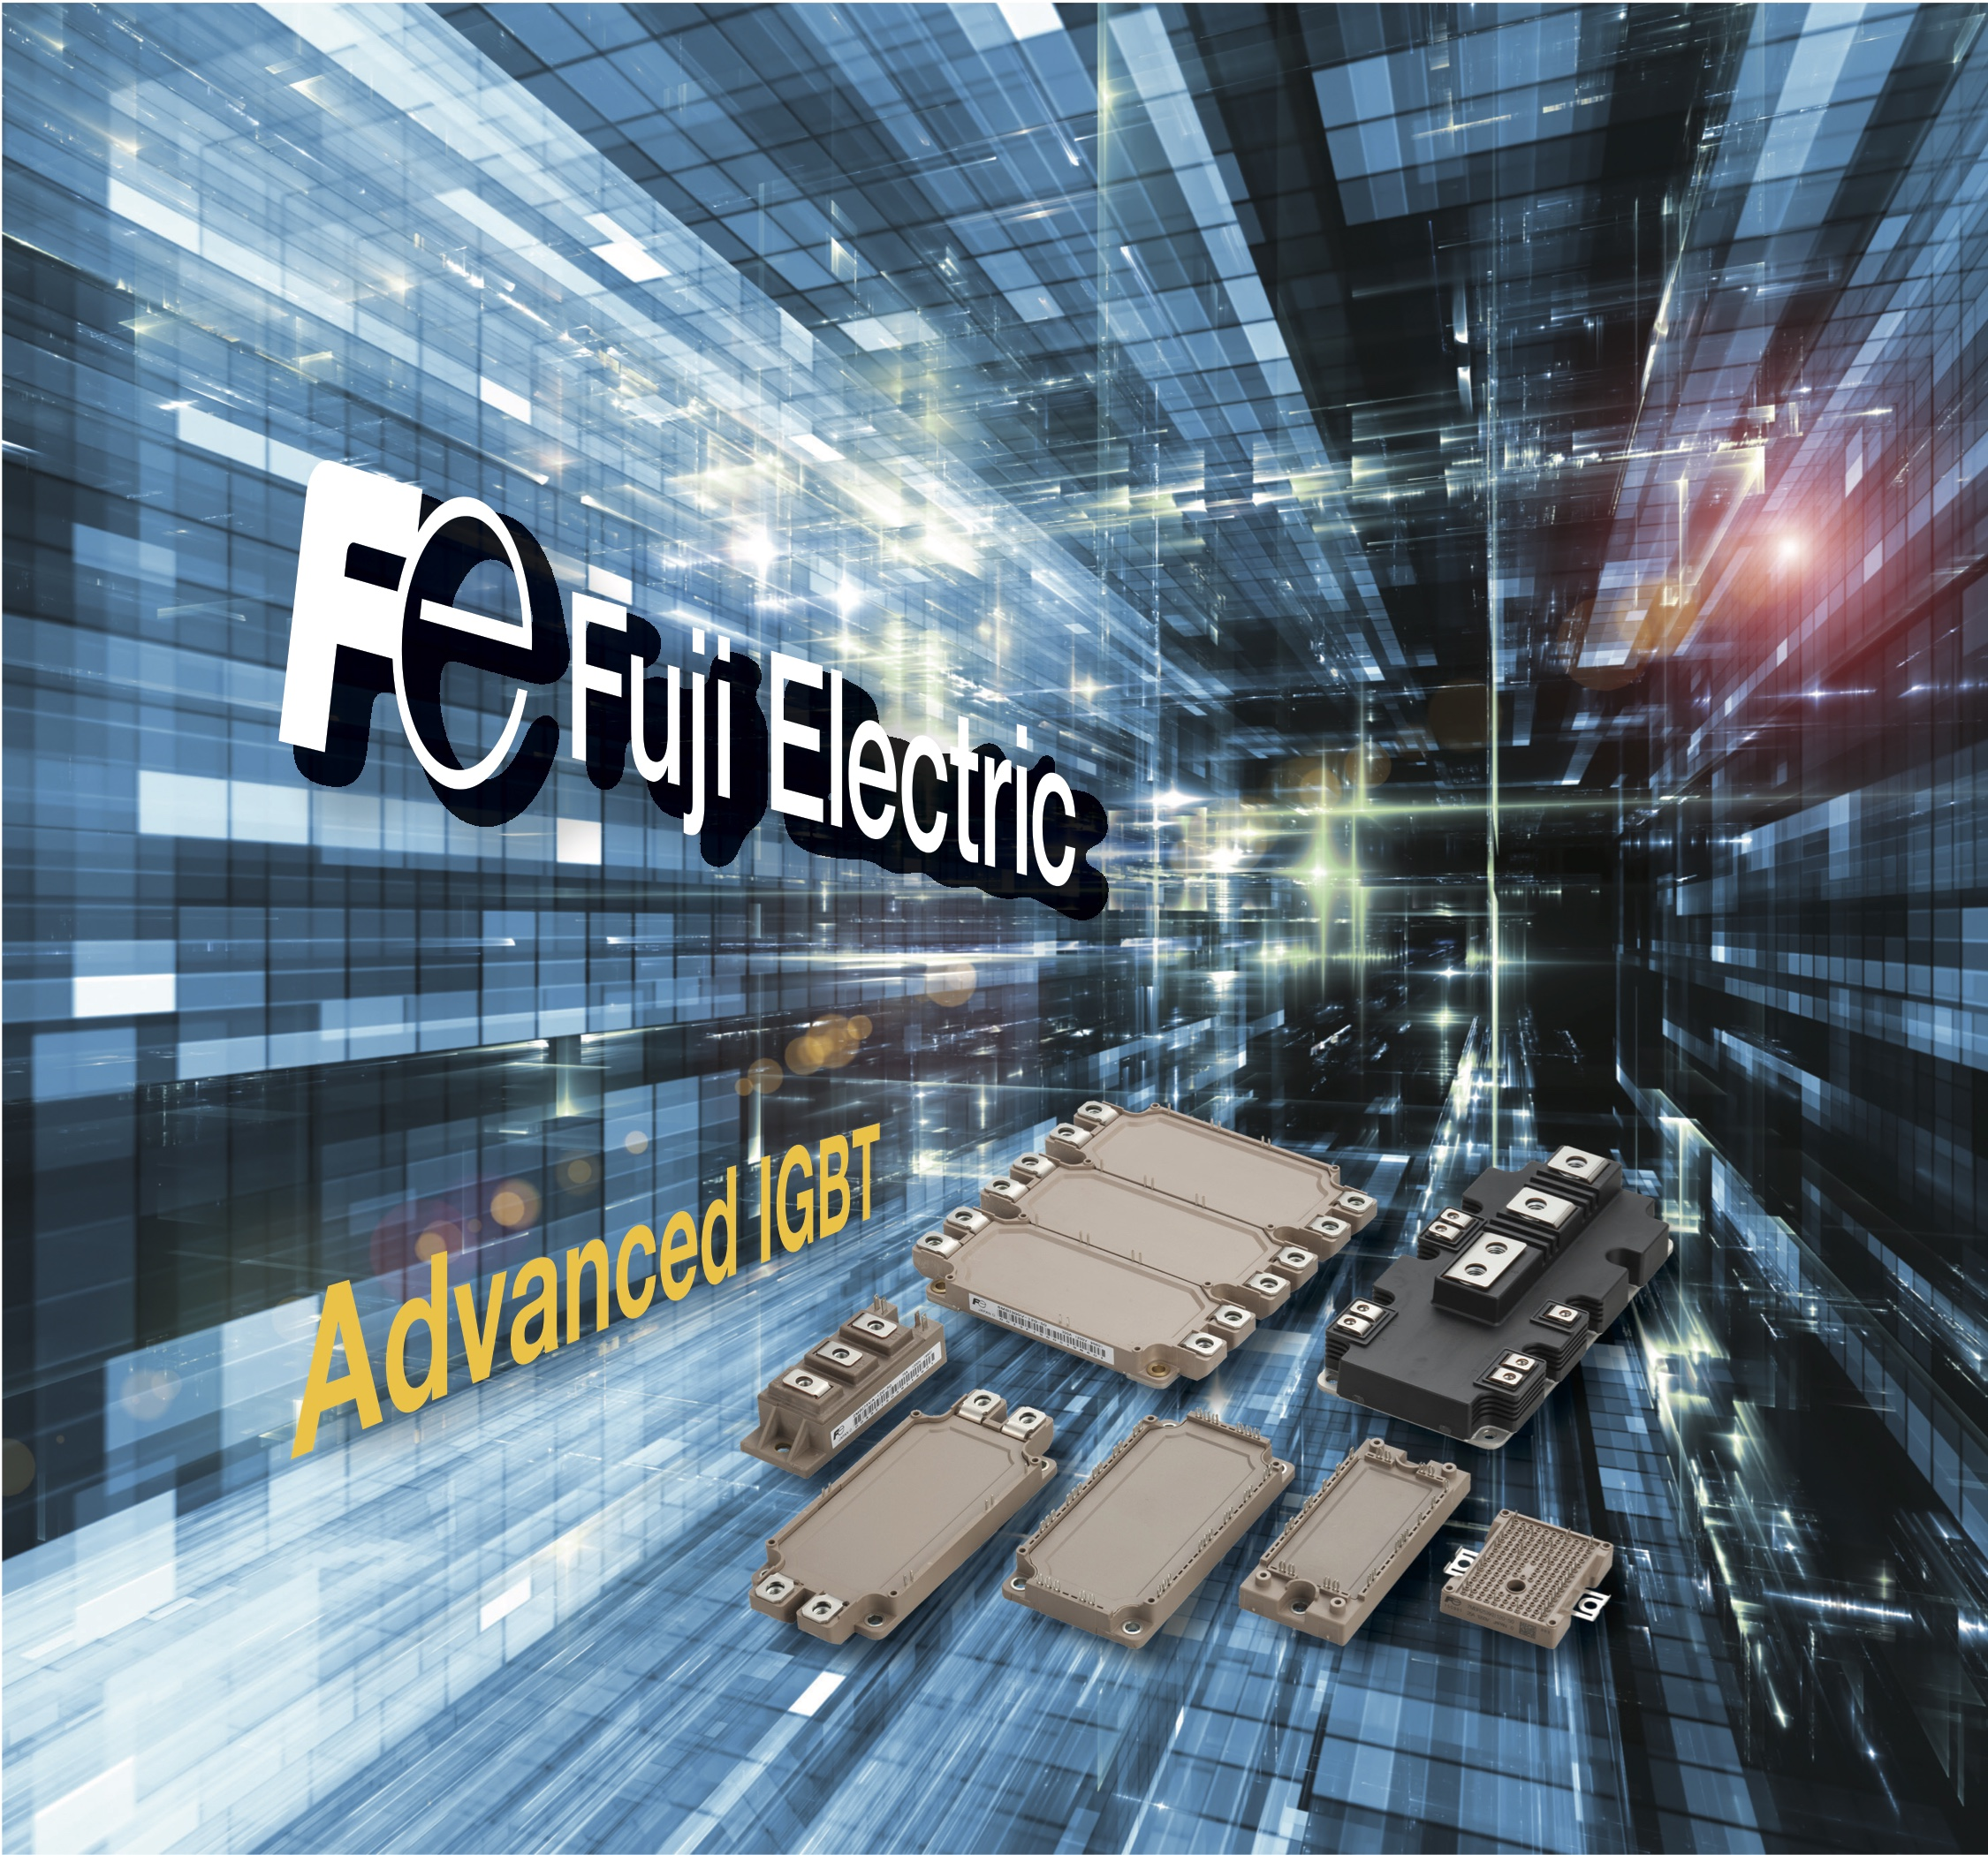 Join Fuji Electric's webinar on advanced IGBT modules today!